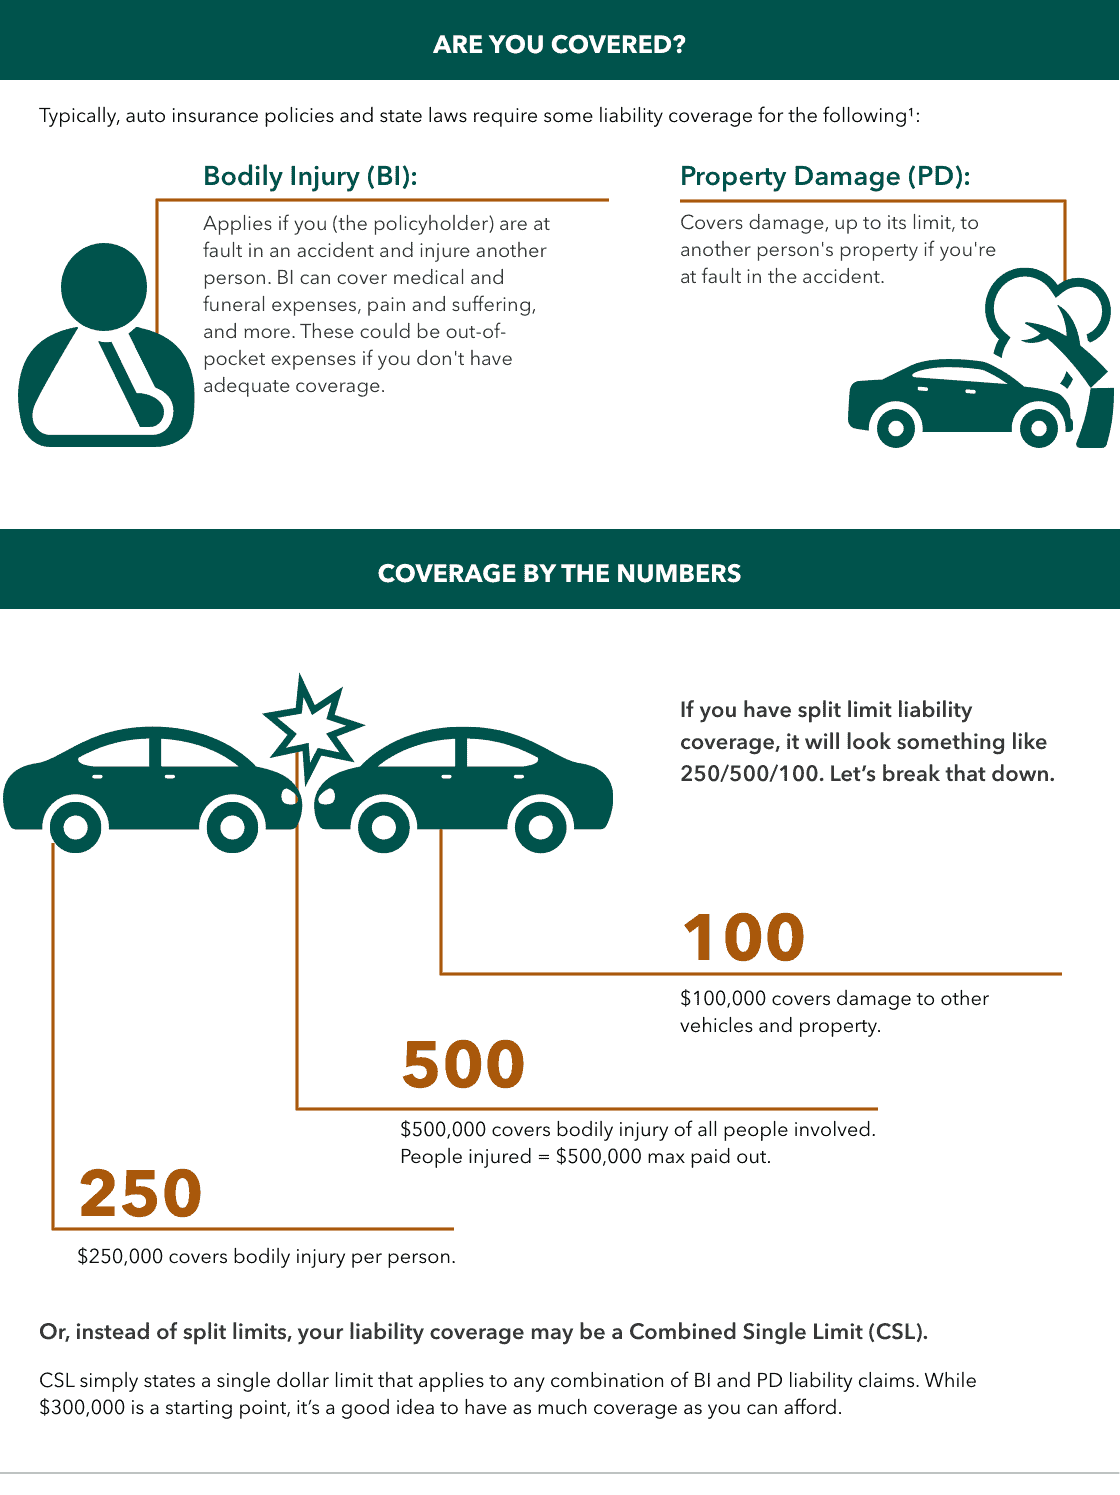 auto insurance coverage infographic